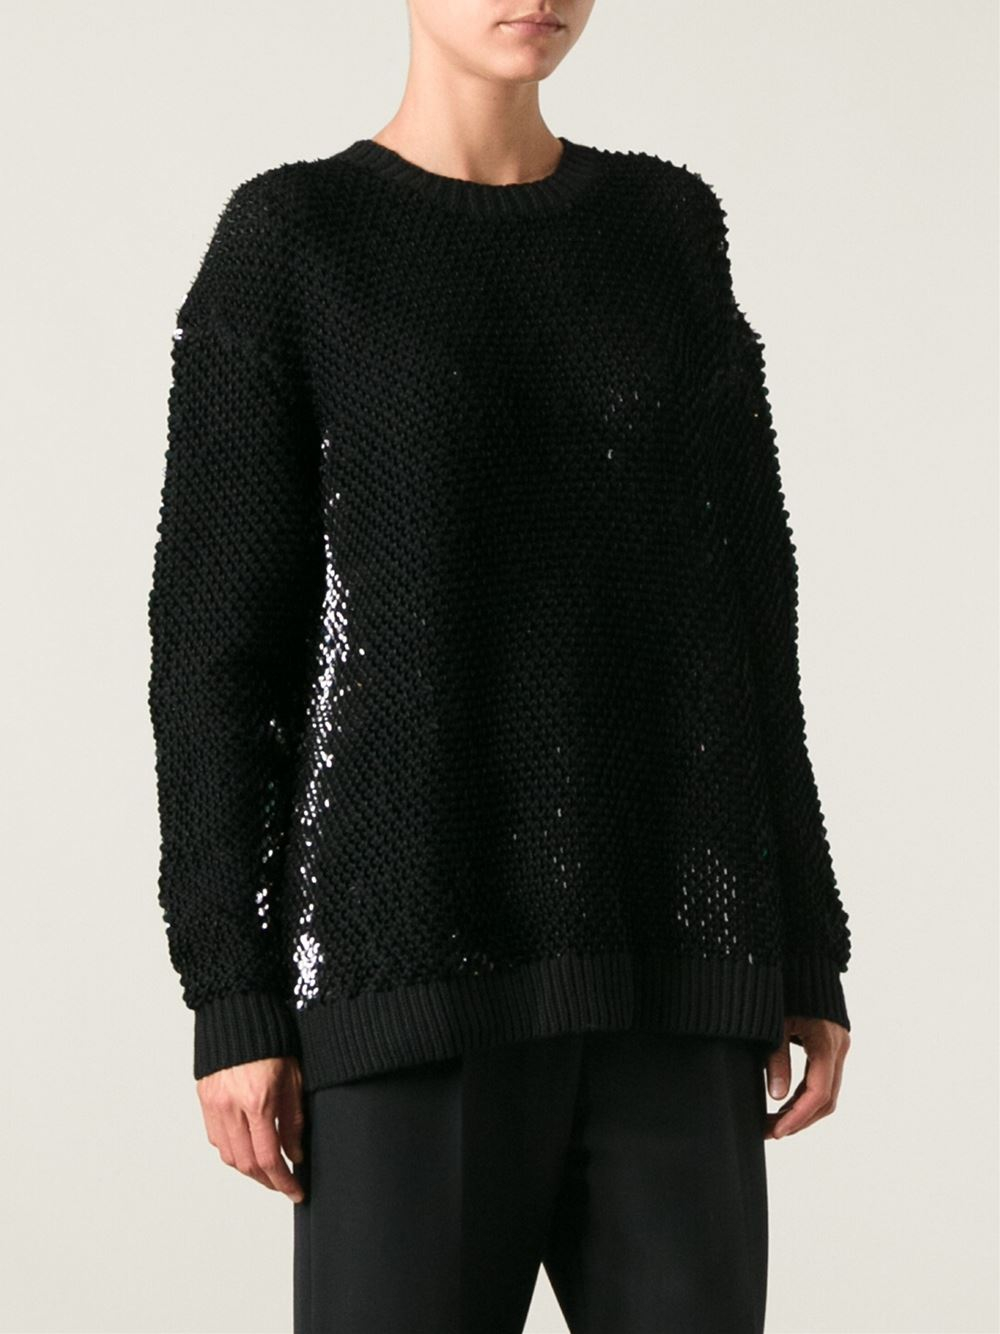 Mcq Sequin Embellished Sweater in Black | Lyst